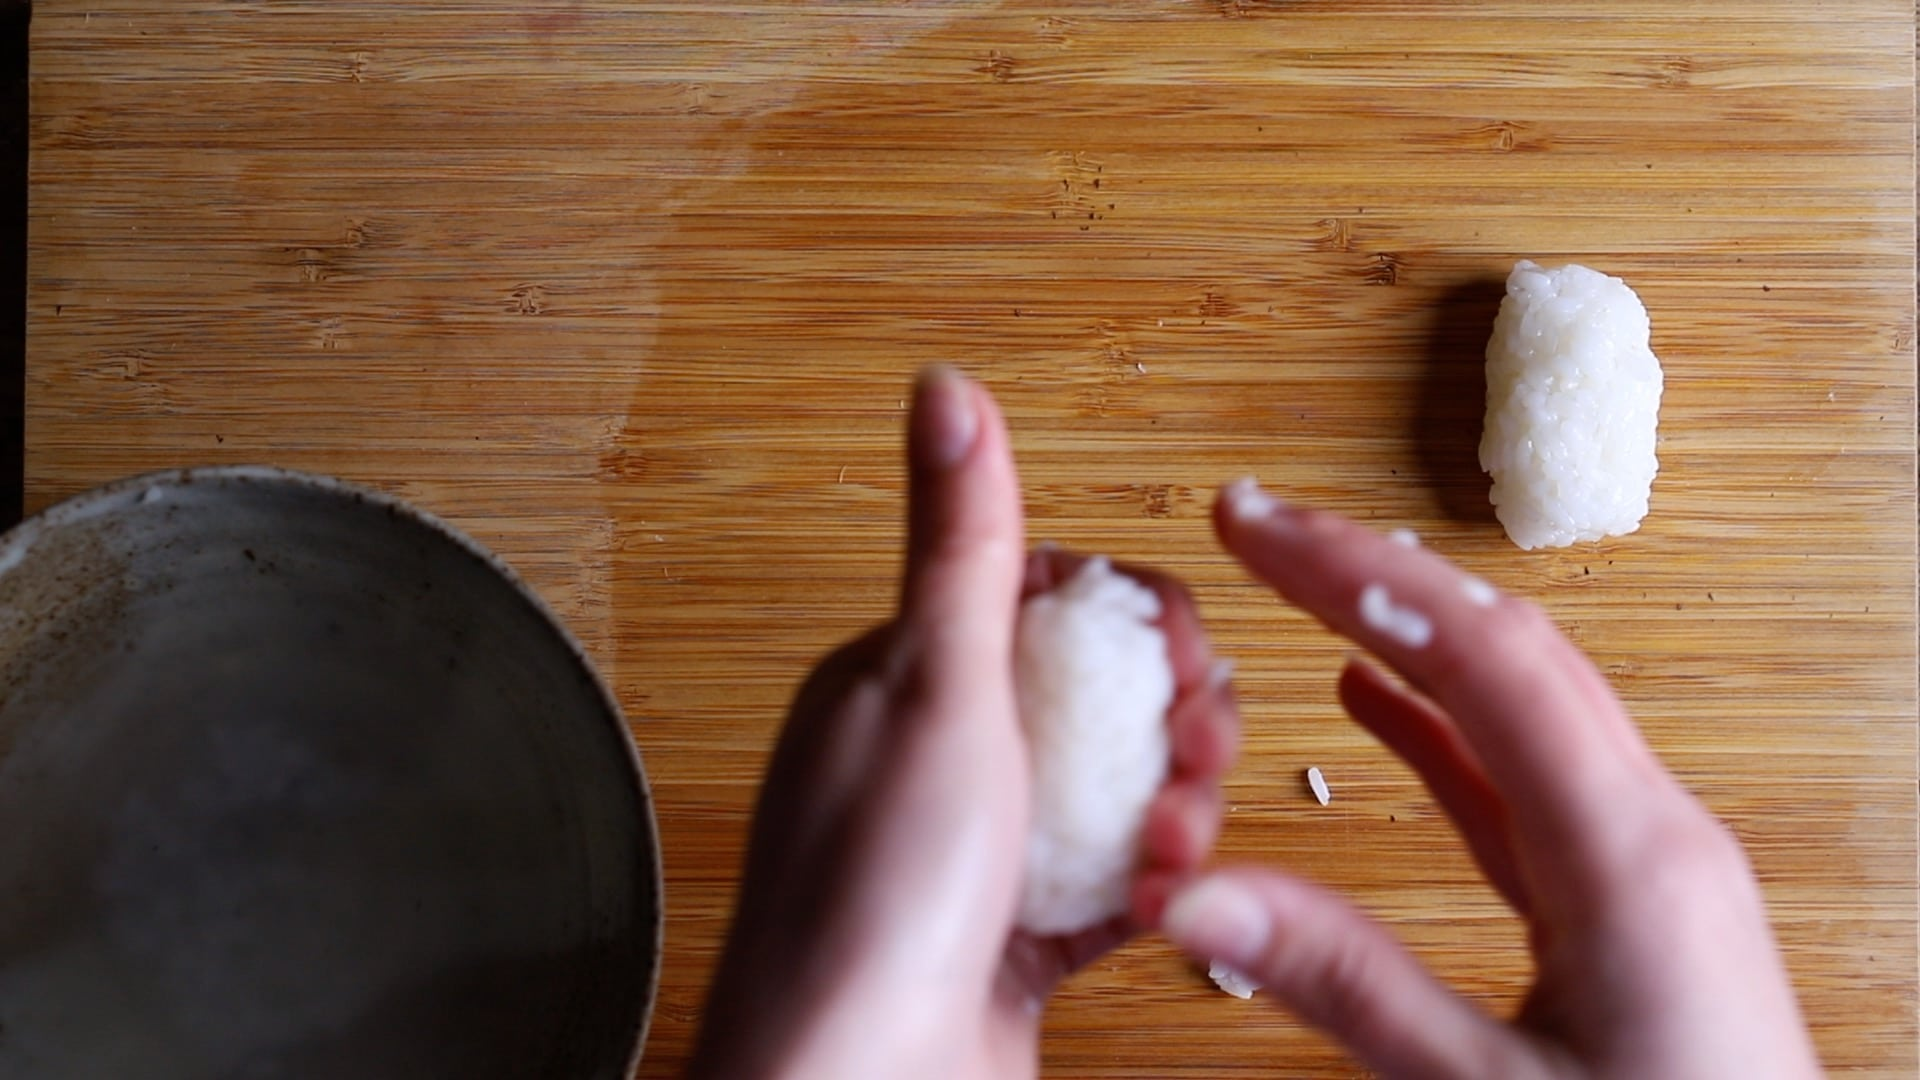 shaping the rice into small oblong balls